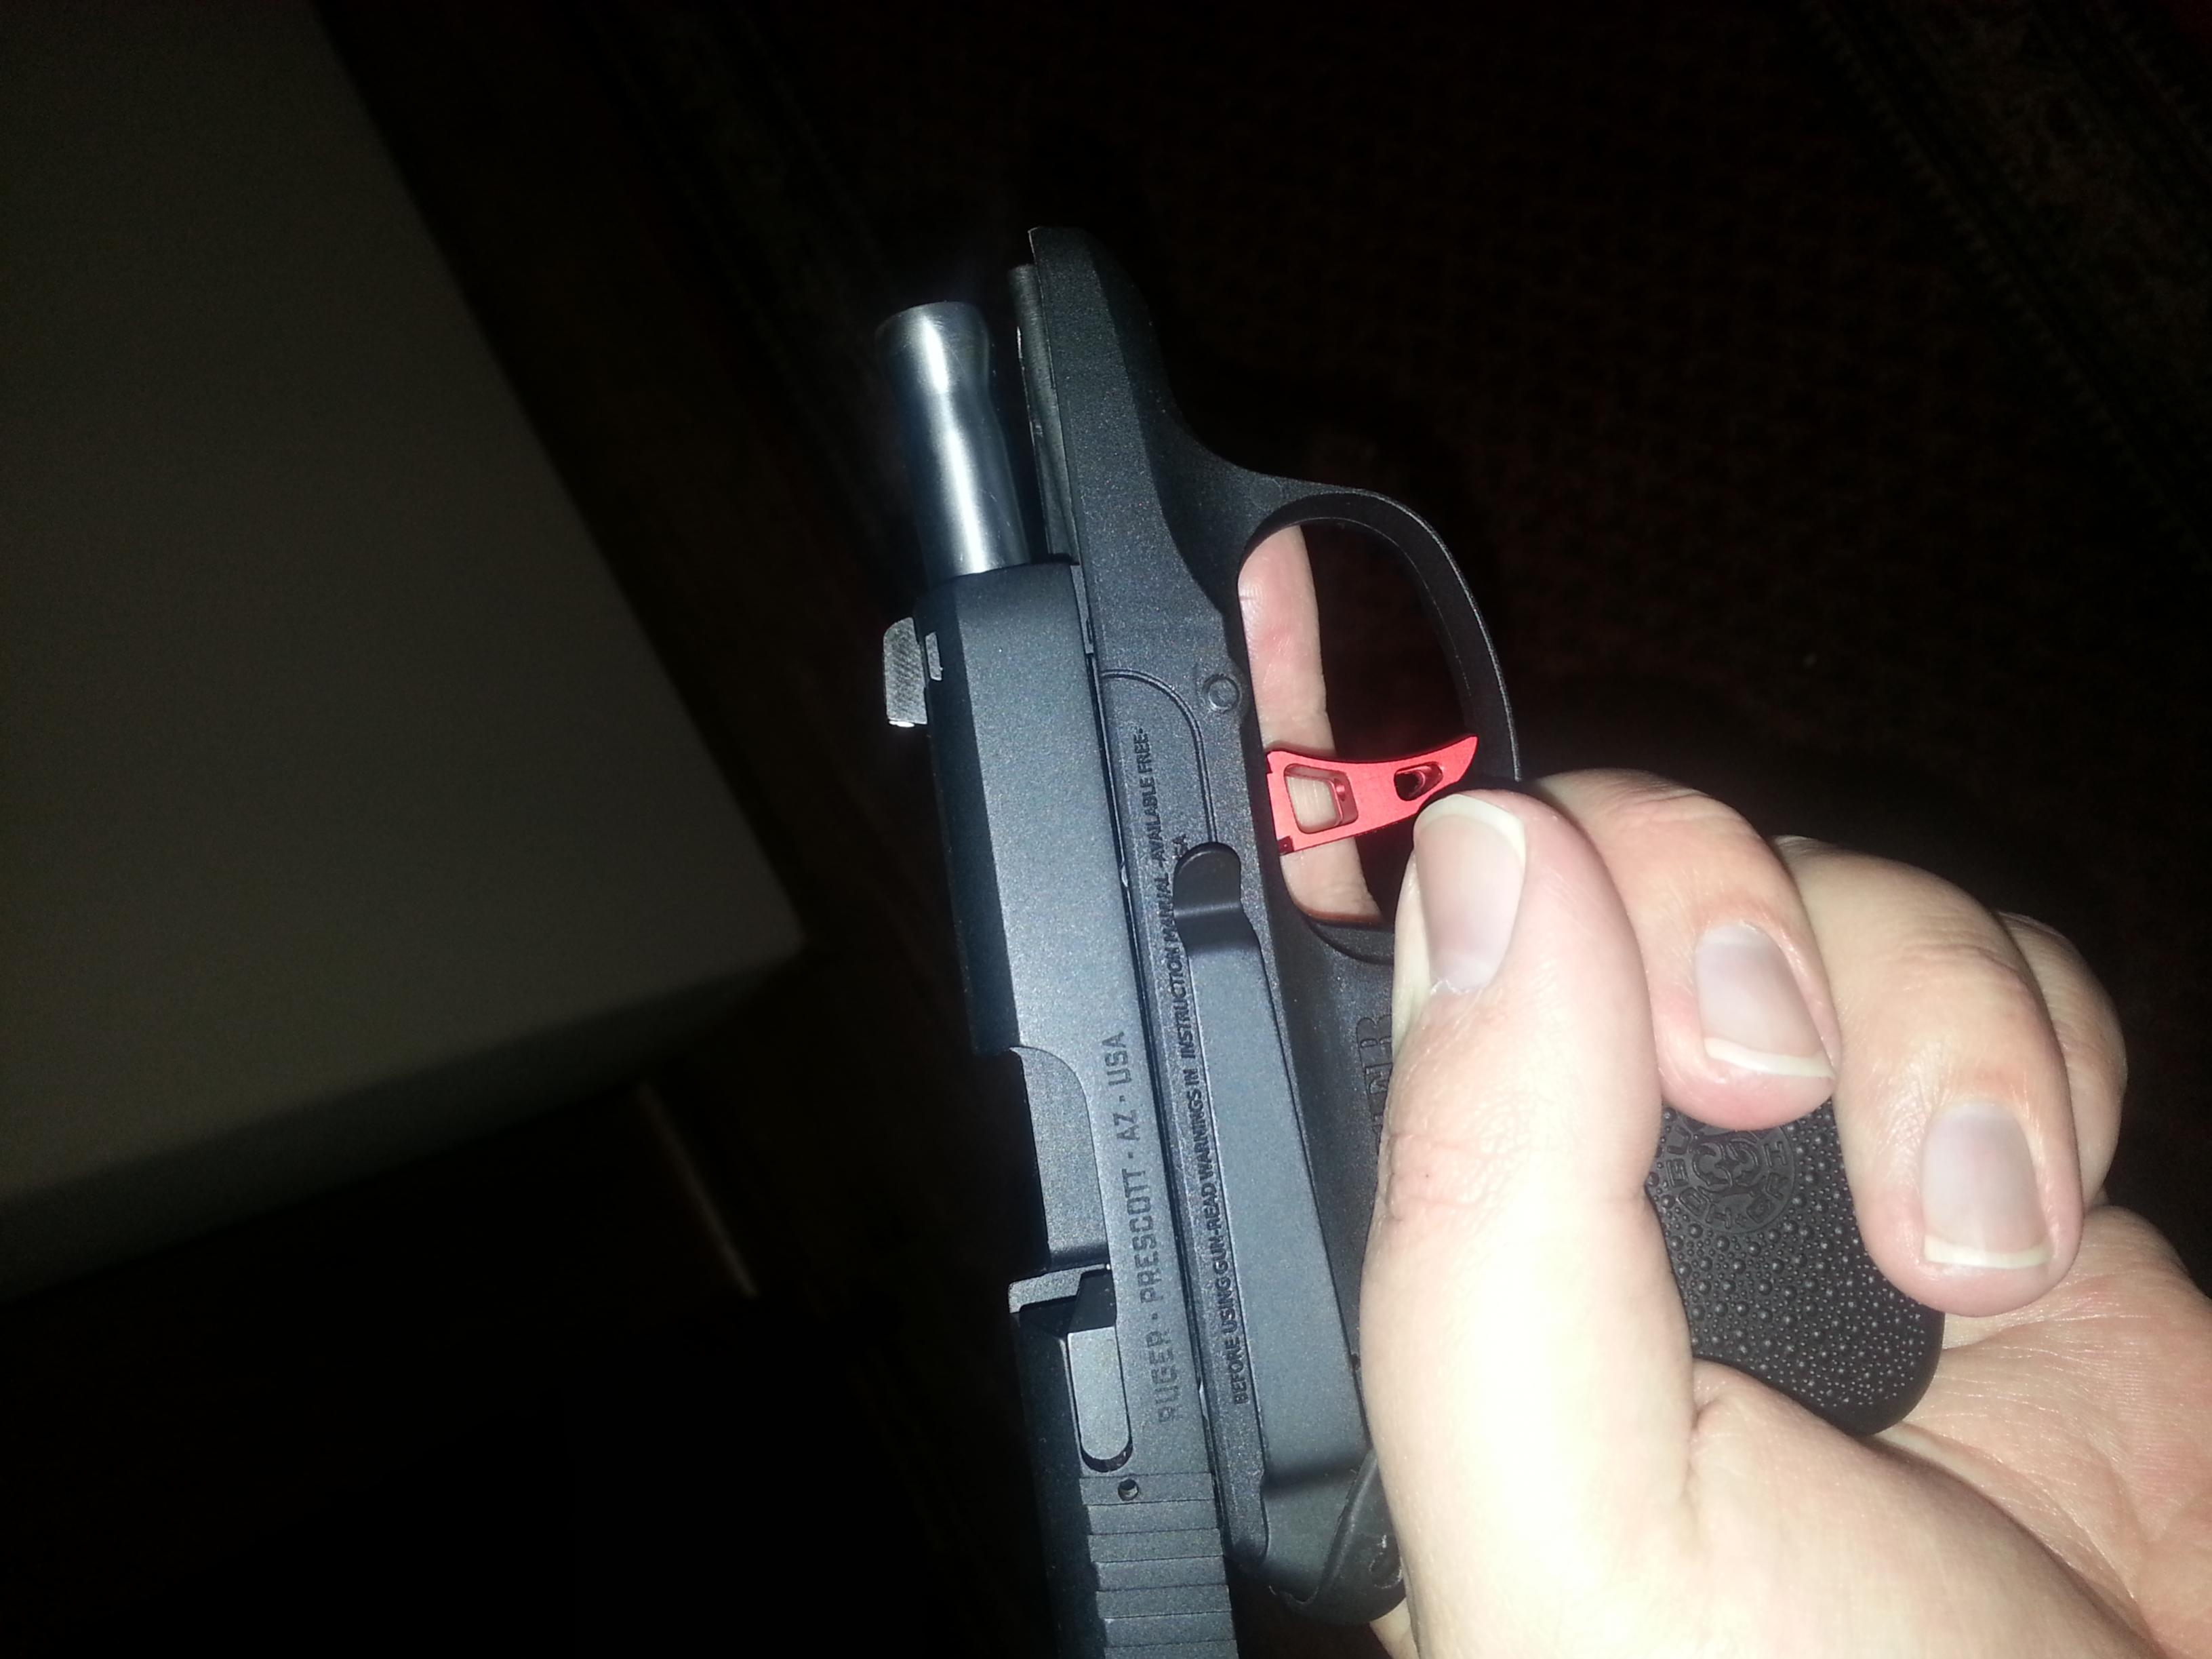 Ruger LCP9 9mm for Conceal Carry-20131111_151921.jpg